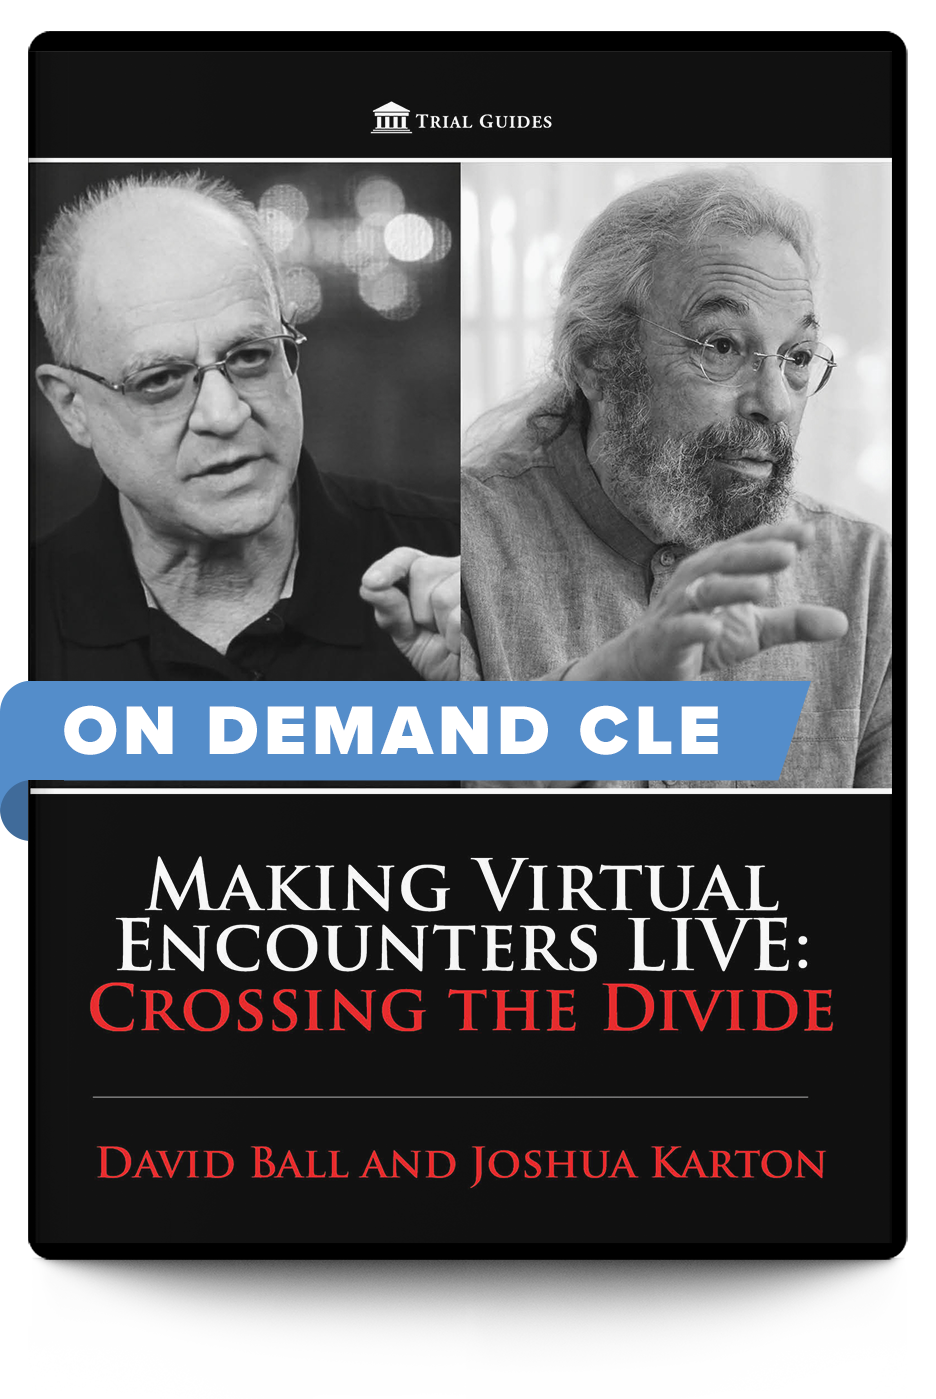 Making Virtual Encounters LIVE: Crossing the Divide (using Zoom and Other Online Conference Tools) - On Demand CLE